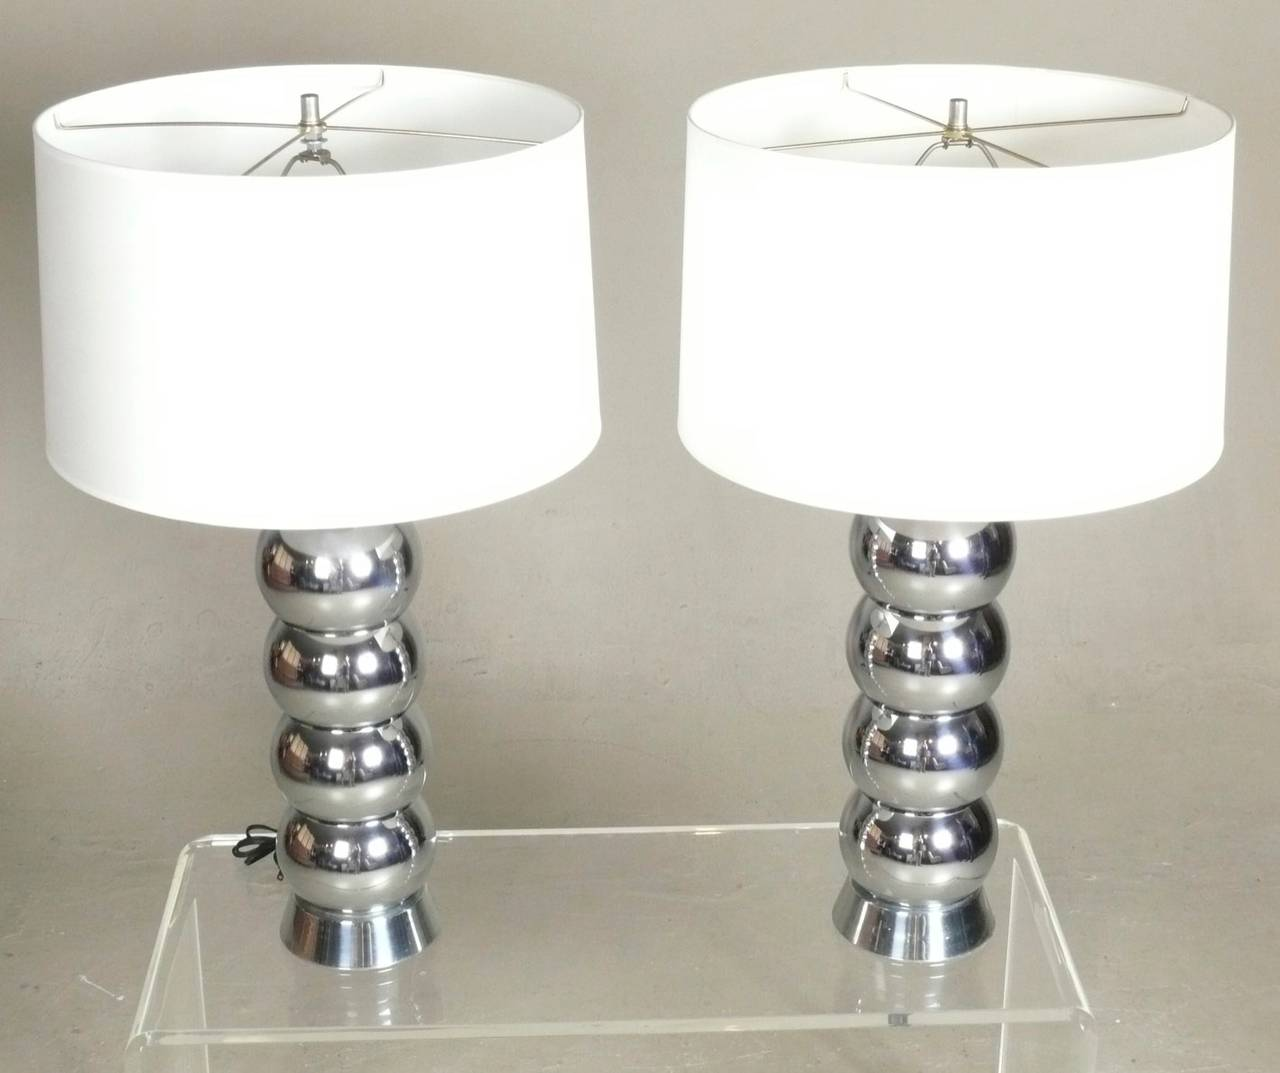 Pair of chrome ball table lamps by george kovacs at 1stdibs pair of chrome ball table lamps by george kovacs 3 geotapseo Choice Image